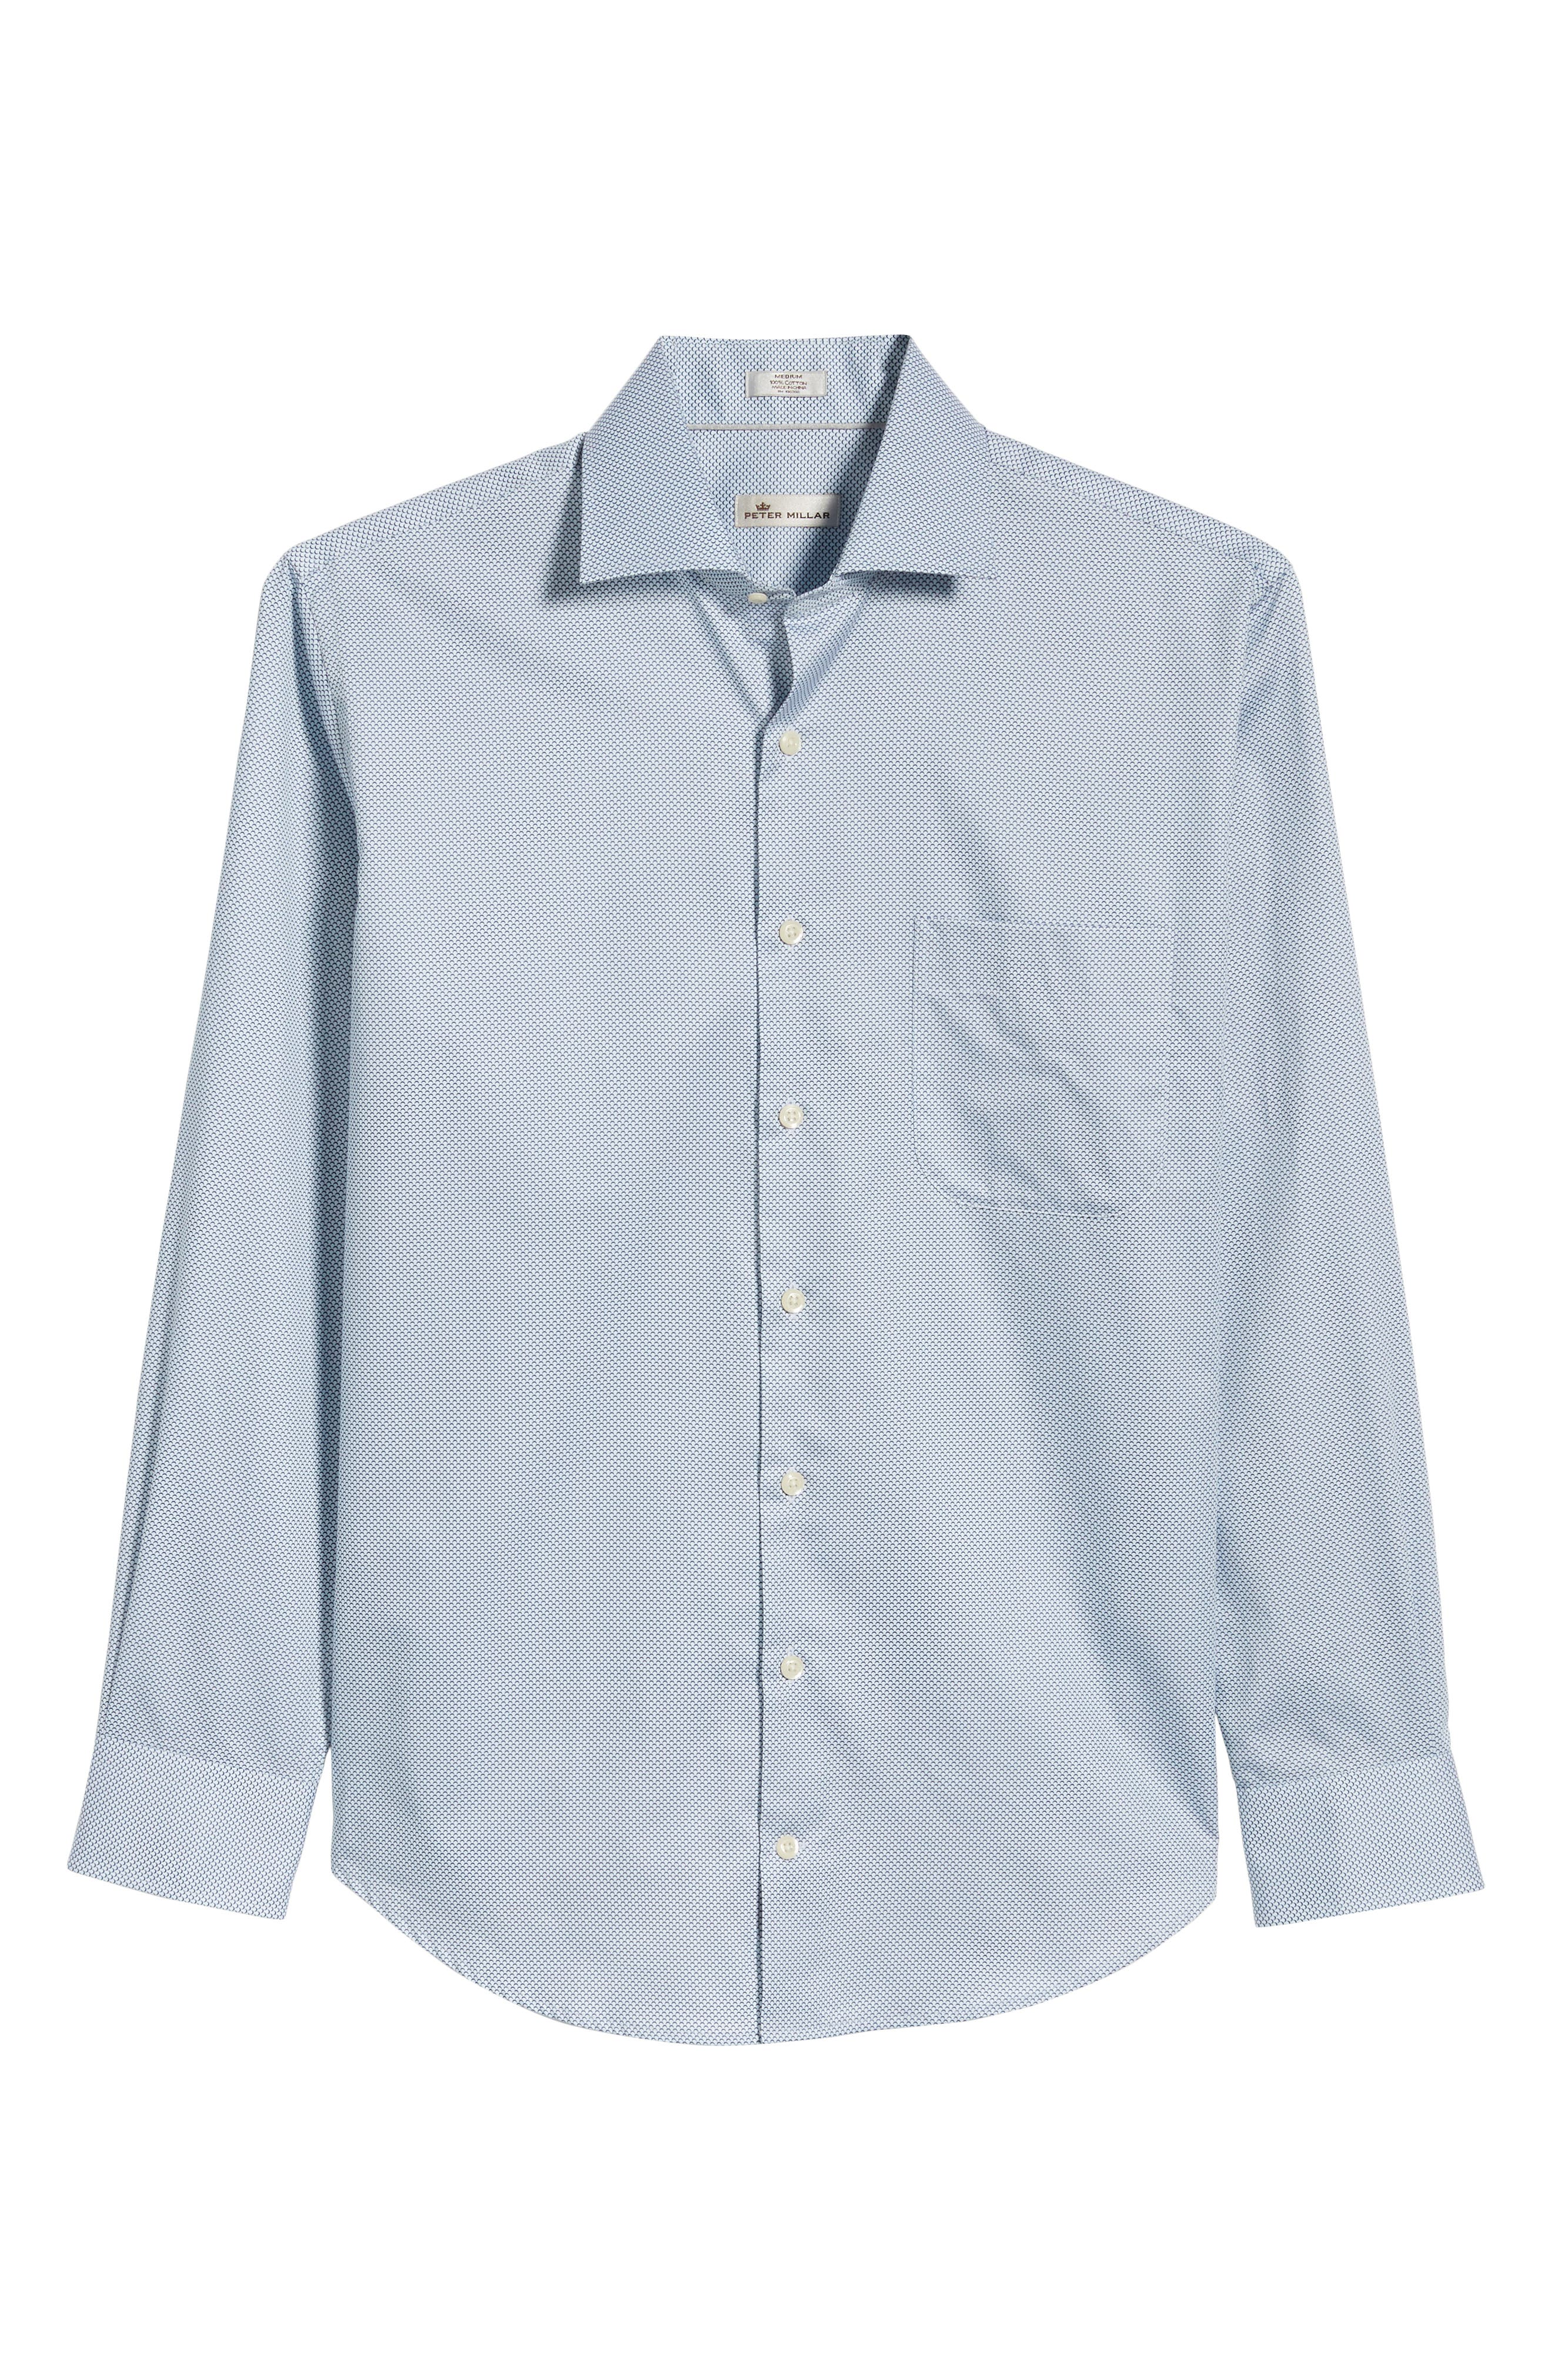 Off the Scale Print Sport Shirt,                             Alternate thumbnail 6, color,                             White